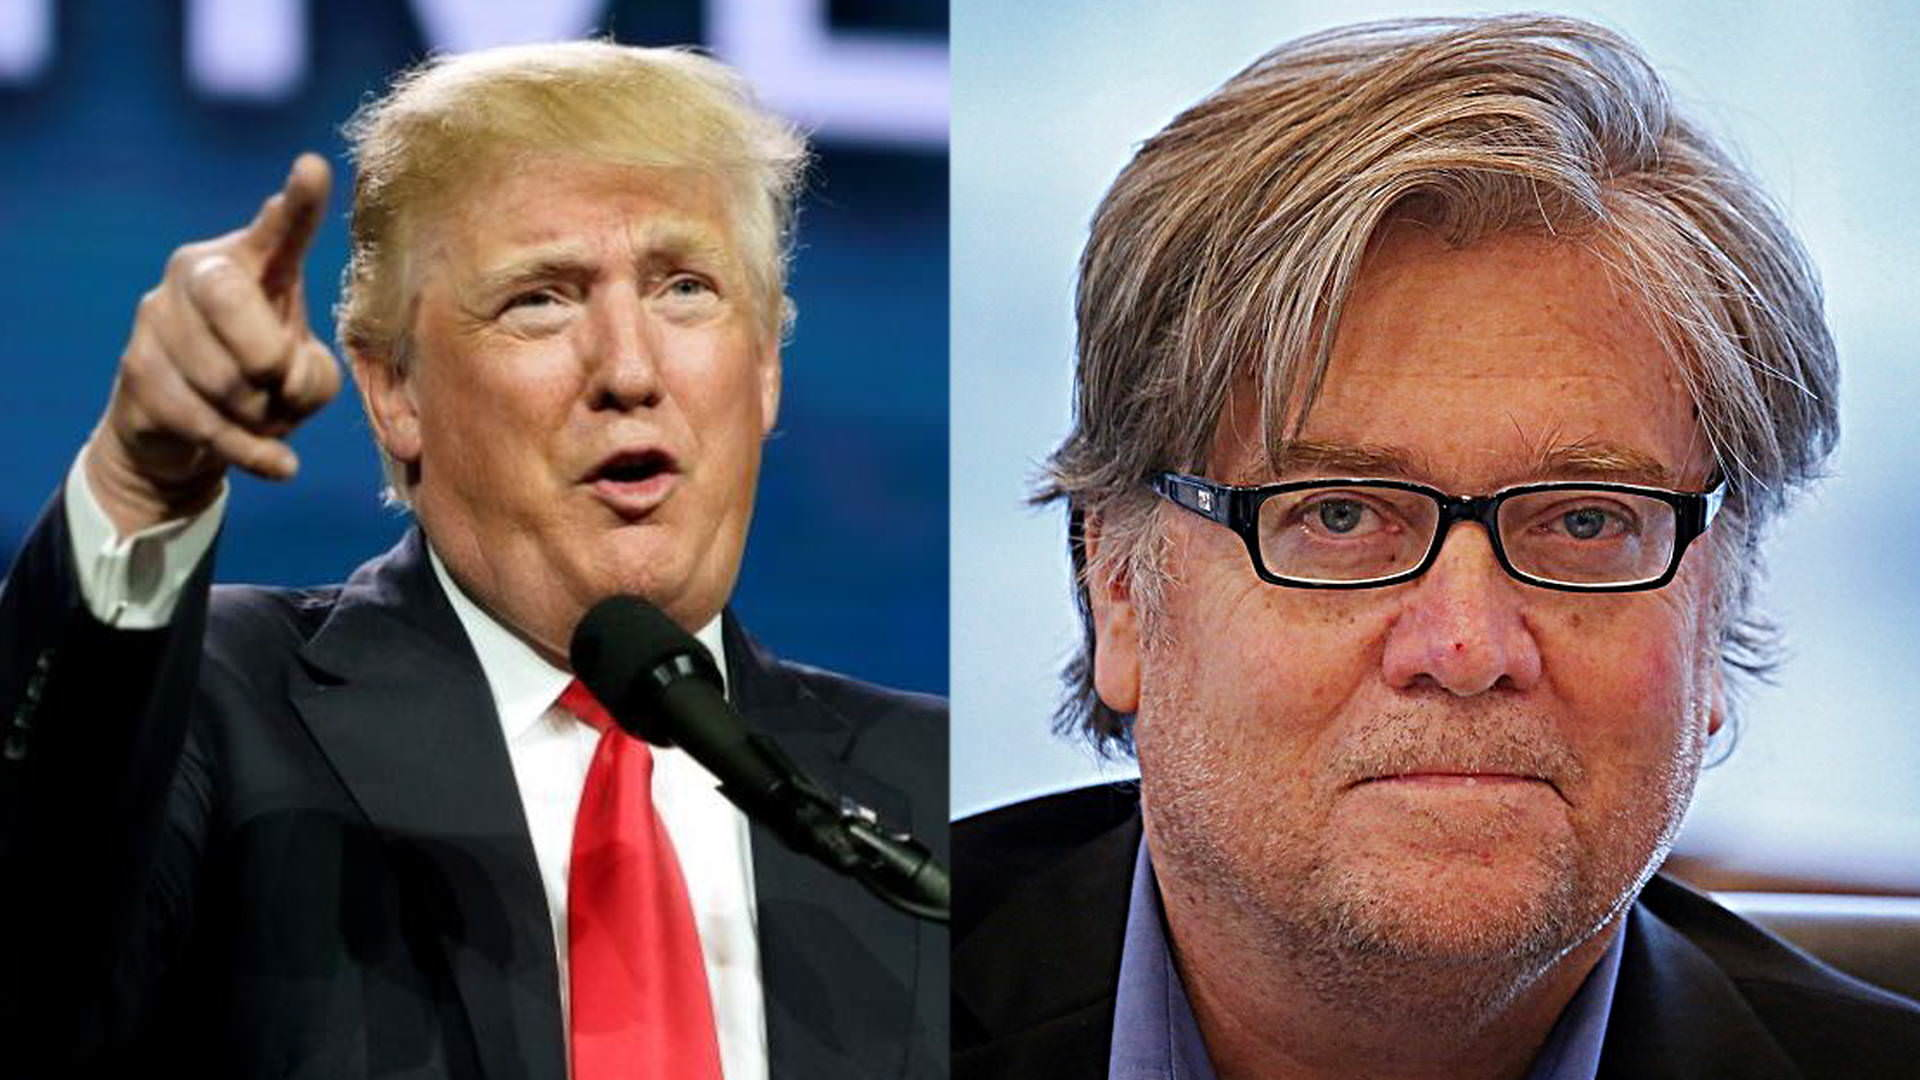 POTUS Trump Breaks Silence on Steve Bannon Amid Calls For Him to Be Fired